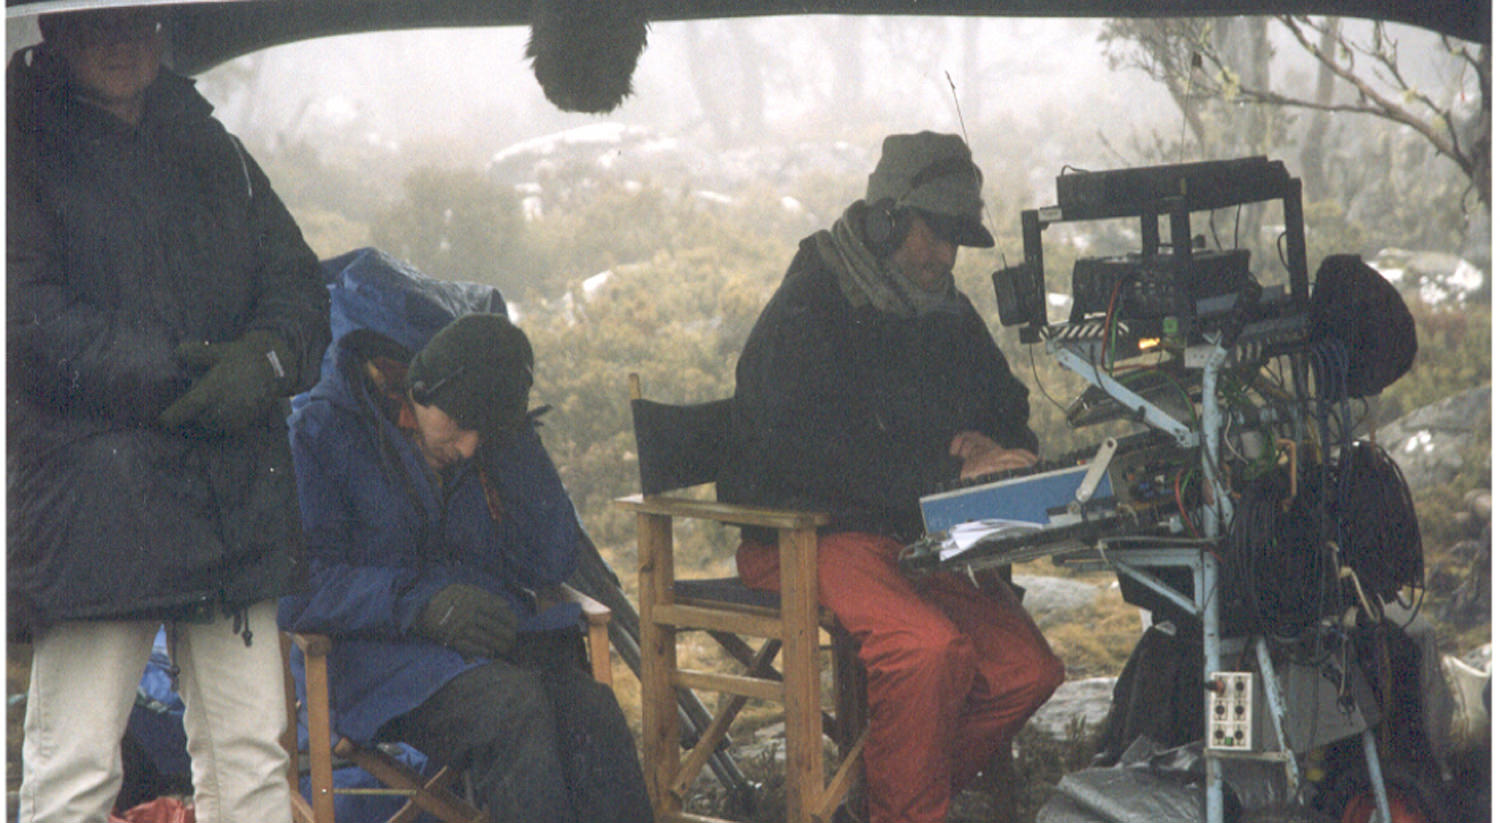 """Freezing in sub zero Tasmania on  """"Noah's Ark""""  1999 using Audio Developments 8 channel mixer and Fostex PD-2 DAT recorder. Luckily these machines had internal heaters."""